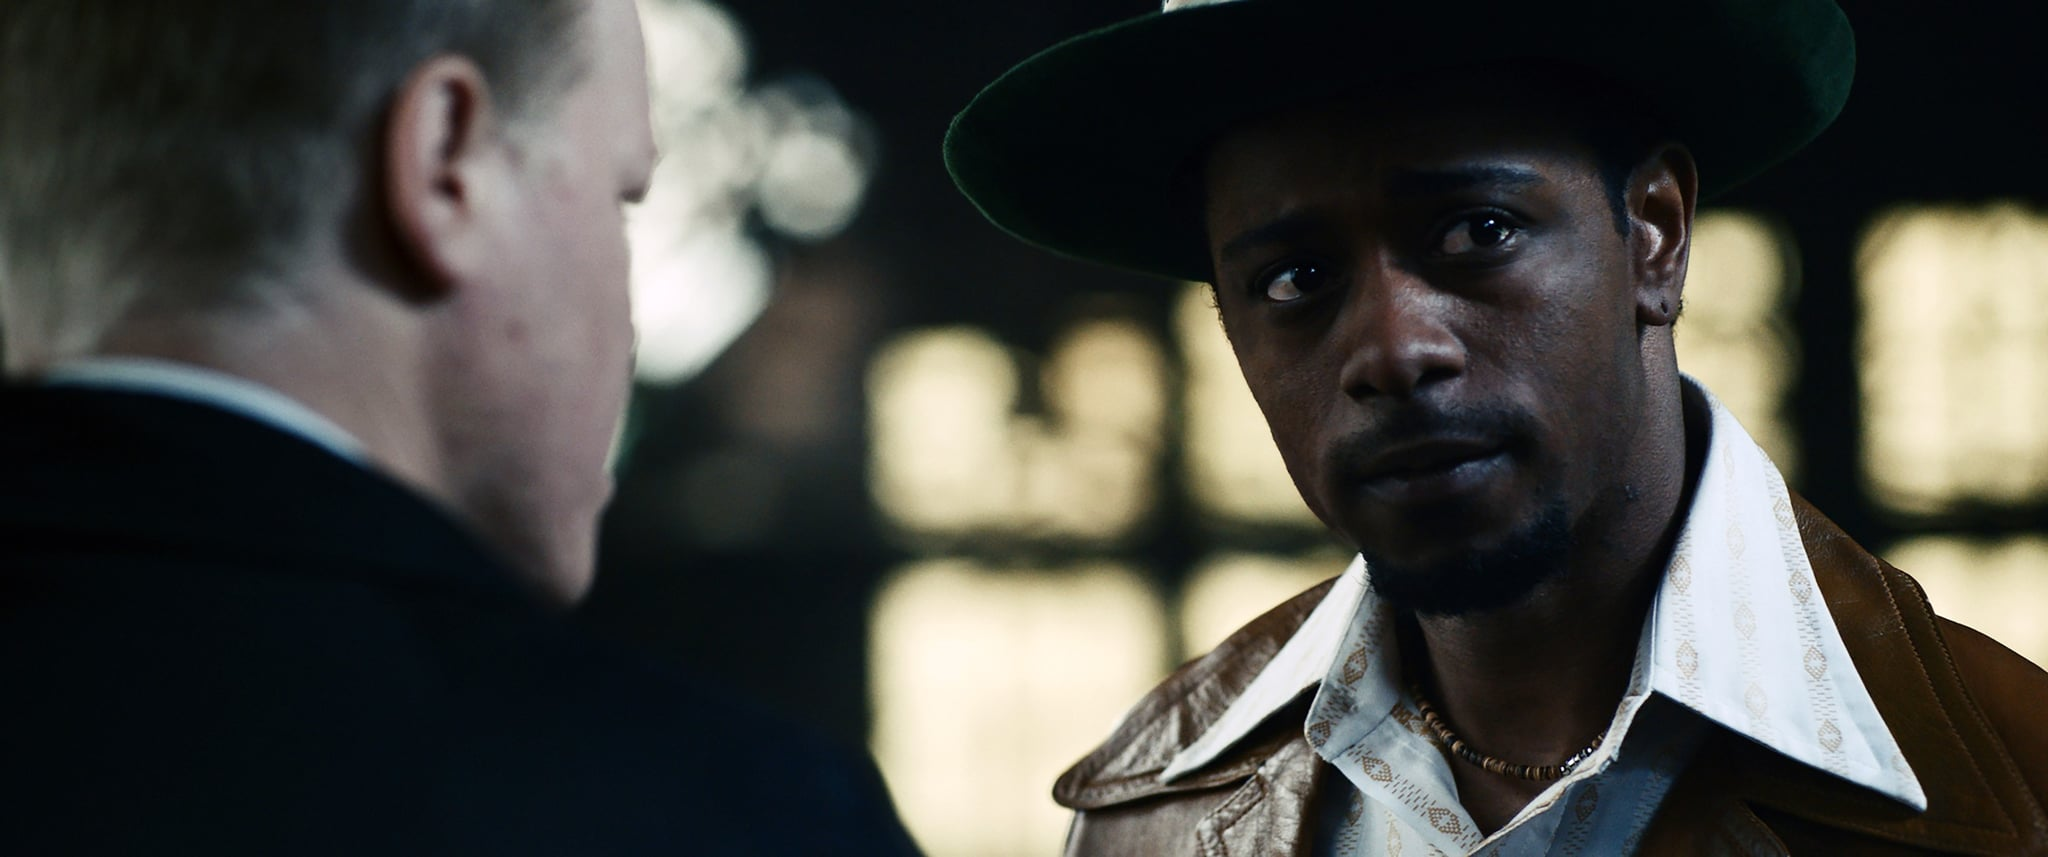 JUDAS AND THE BLACK MESSIAH, from left: Jesse Plemons, LaKeith Stanfield, as William O'Neal, 2021.   Warner Bros. / Courtesy Everett Collection